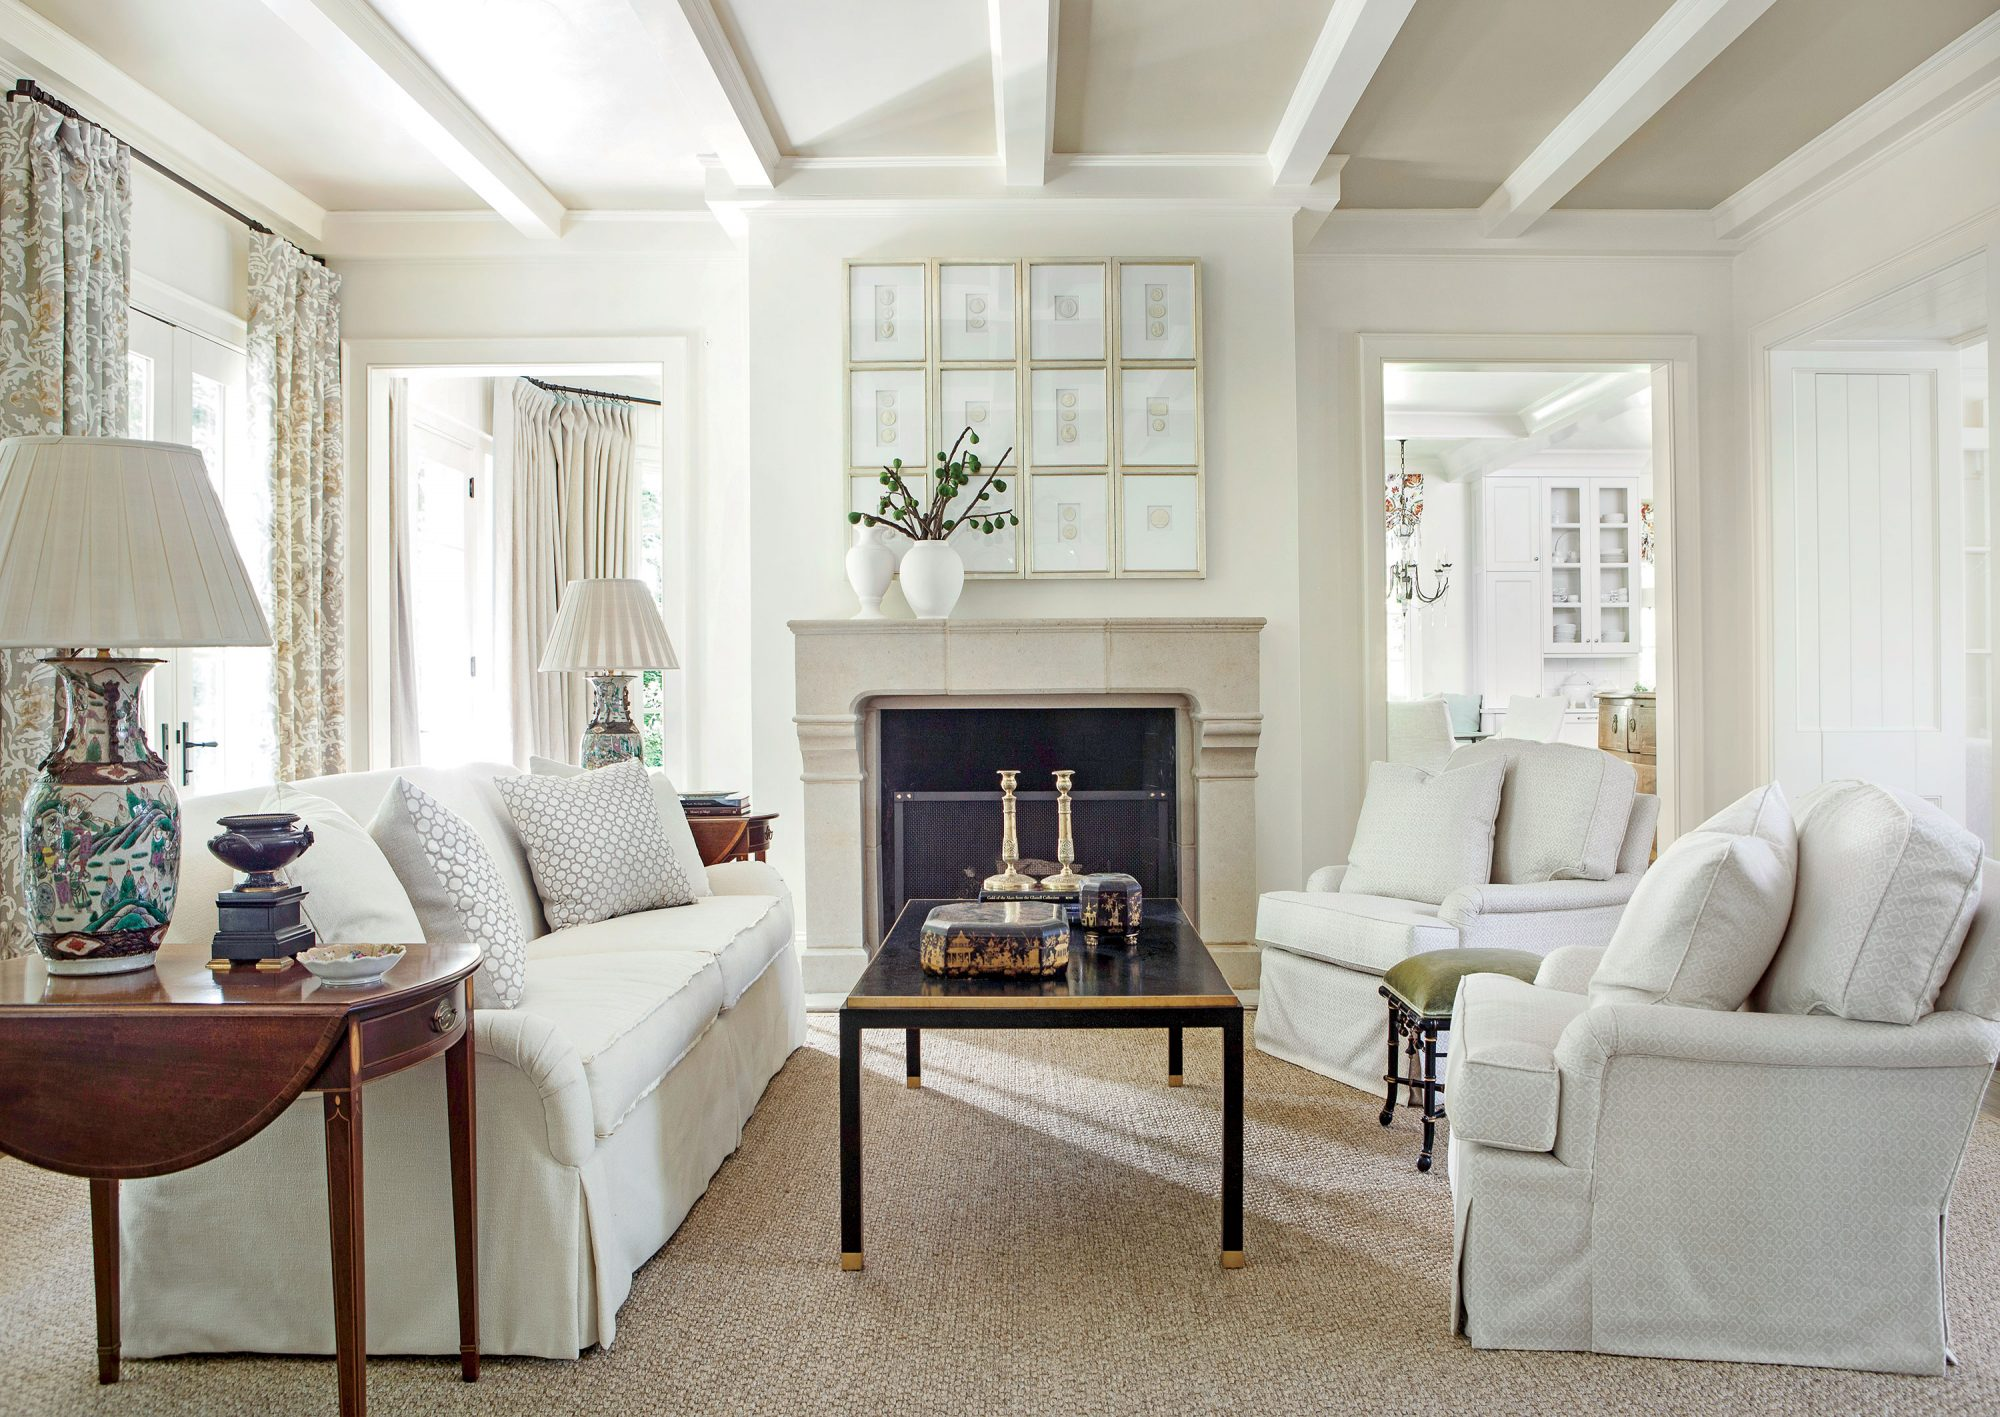 106 Living Room Decorating Ideas Southern Living - Design-a-living-room